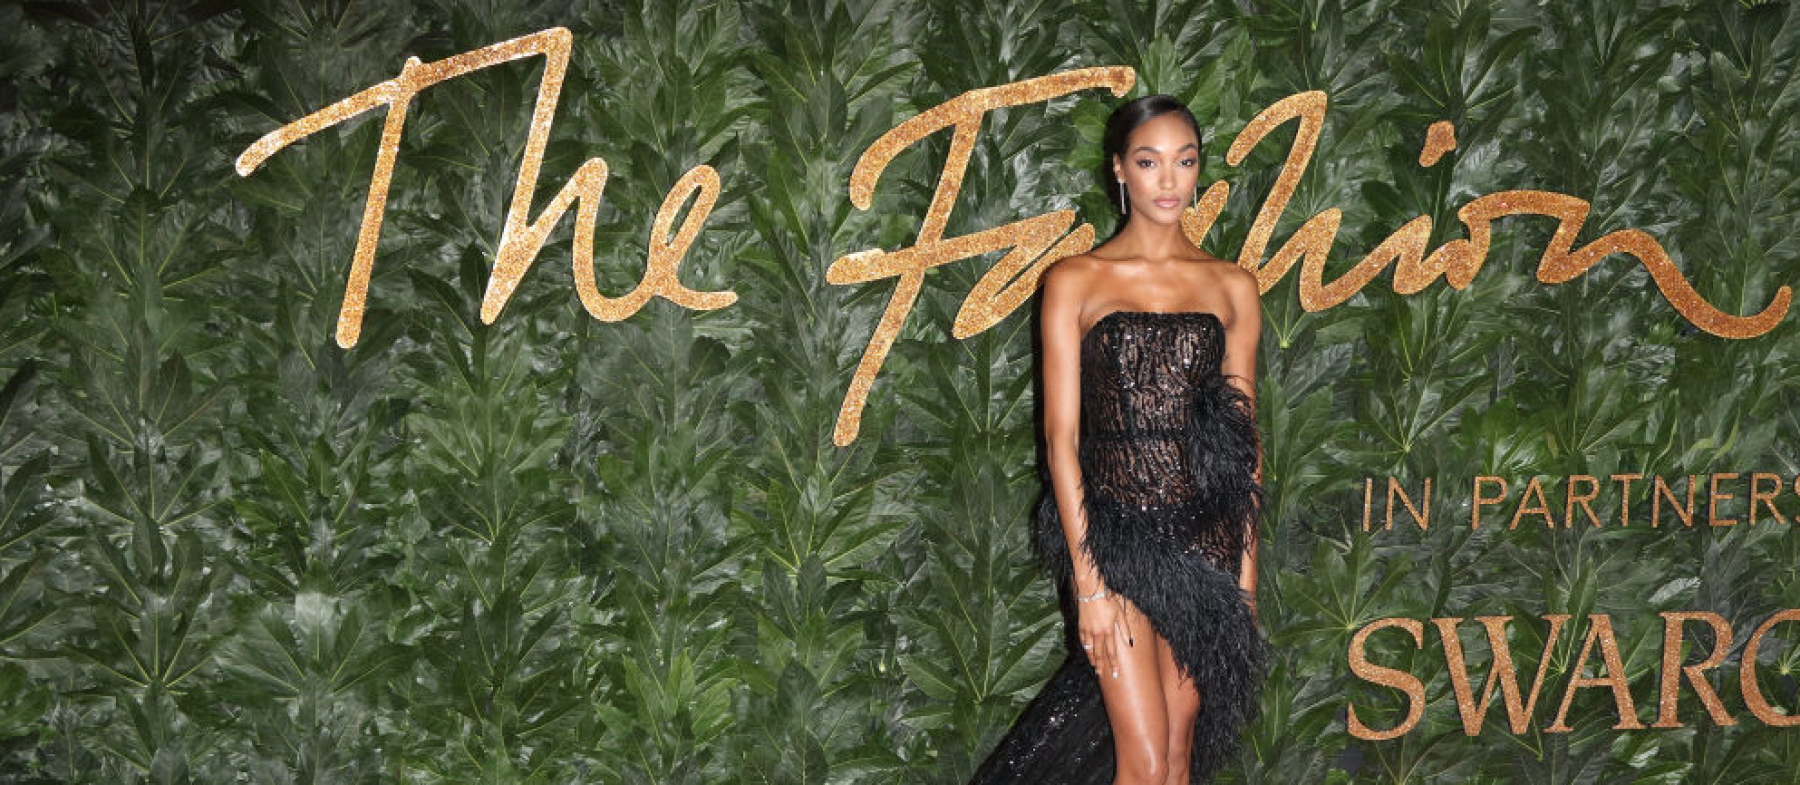 LONDON, -, UNITED KINGDOM - 2018/12/10: Jourdan Dunn seen on the red carpet during the Fashion Awards 2018 at the Royal Albert Hall, Kensington in London. (Photo by Keith Mayhew/SOPA Images/LightRocket via Getty Images)